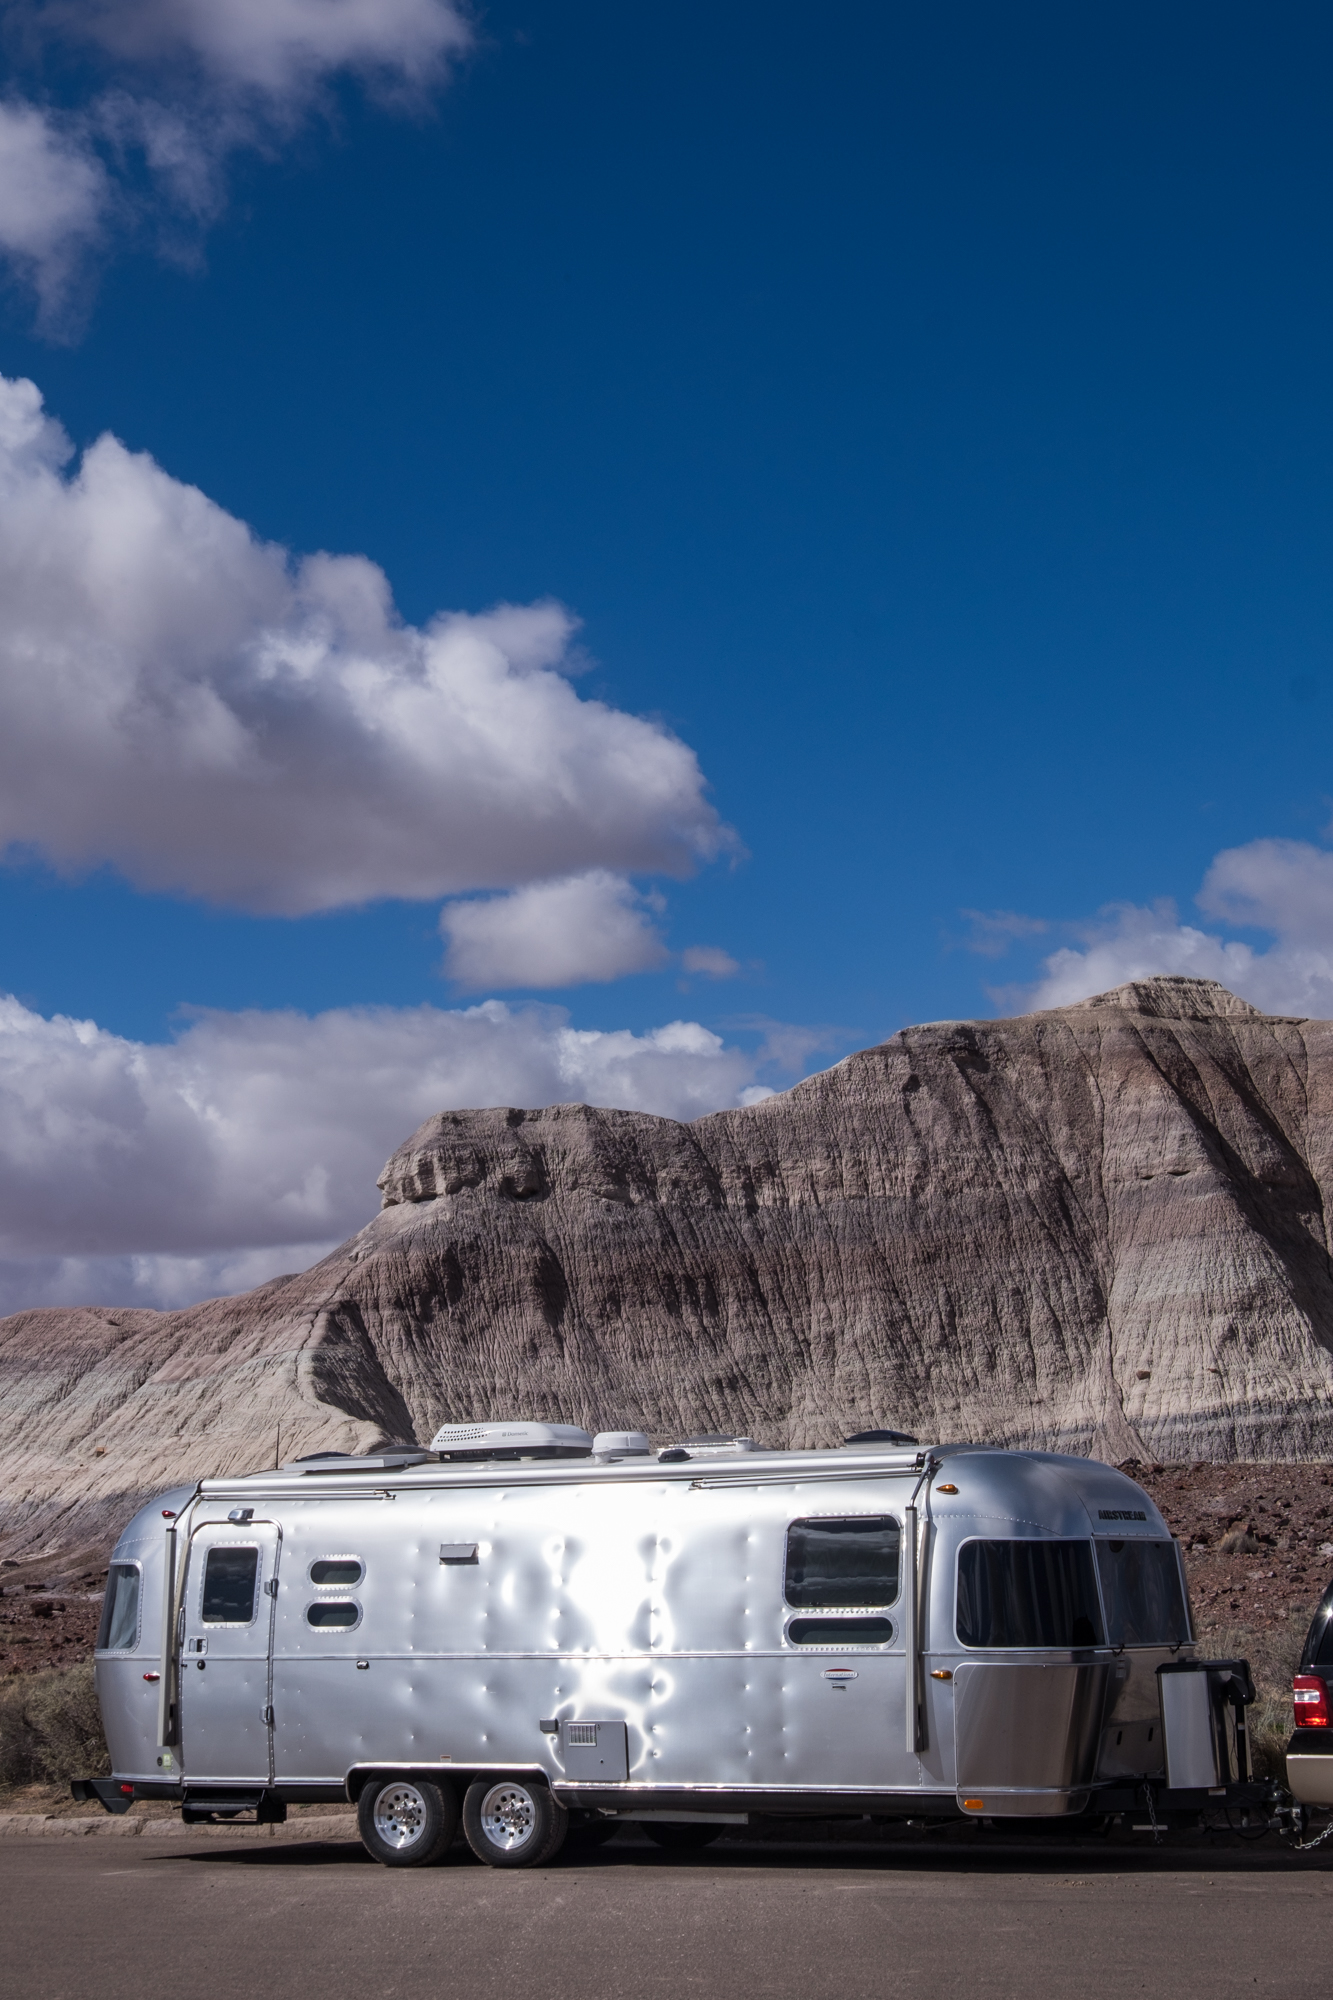 Wally the Airstream at Martha's Butte in Petrified Forest National Park in Arizona.